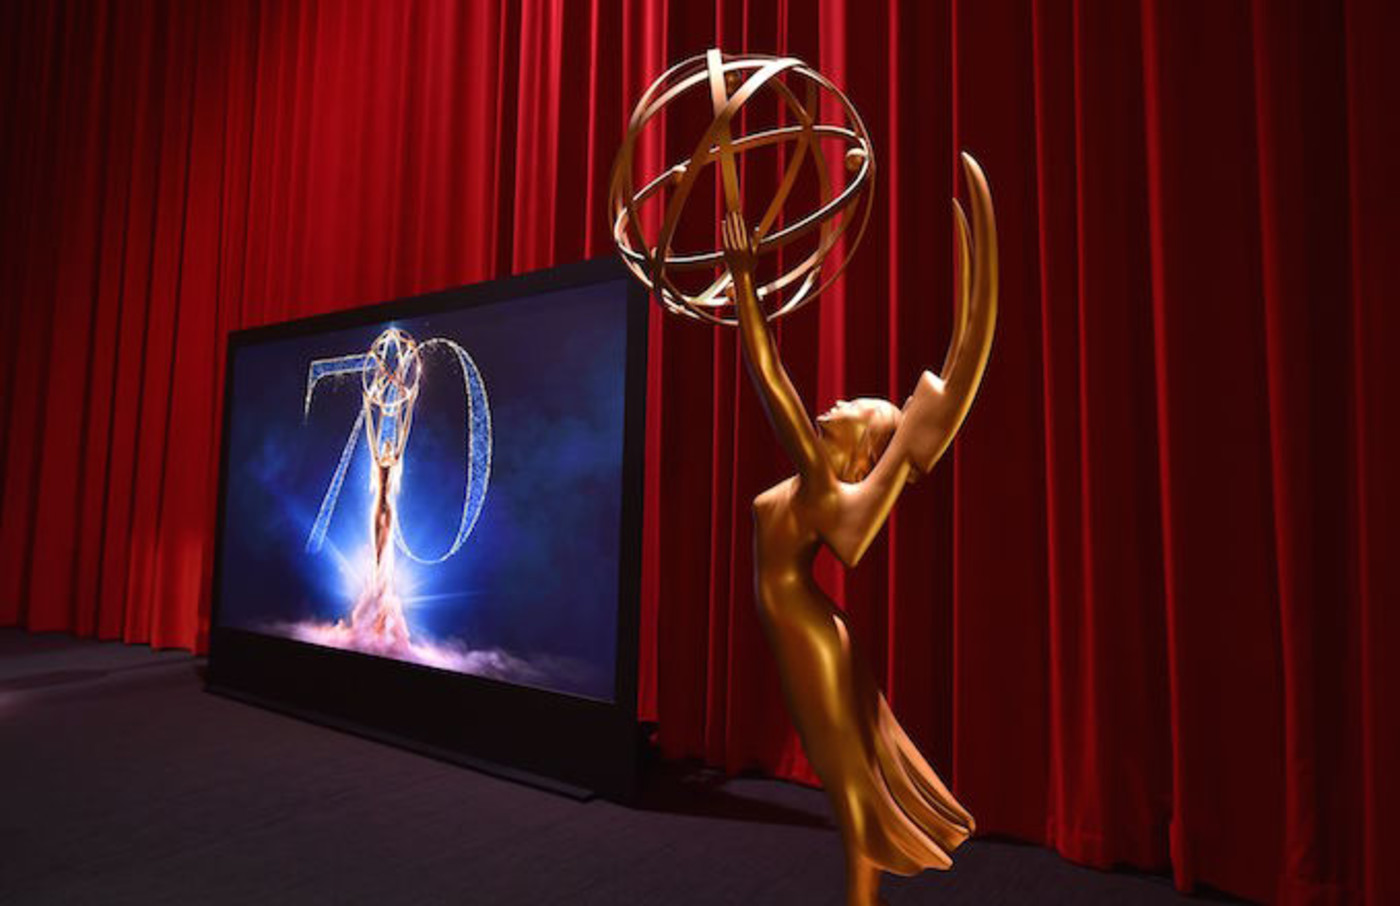 The 70th Emmy Awards will take place in September 2018.